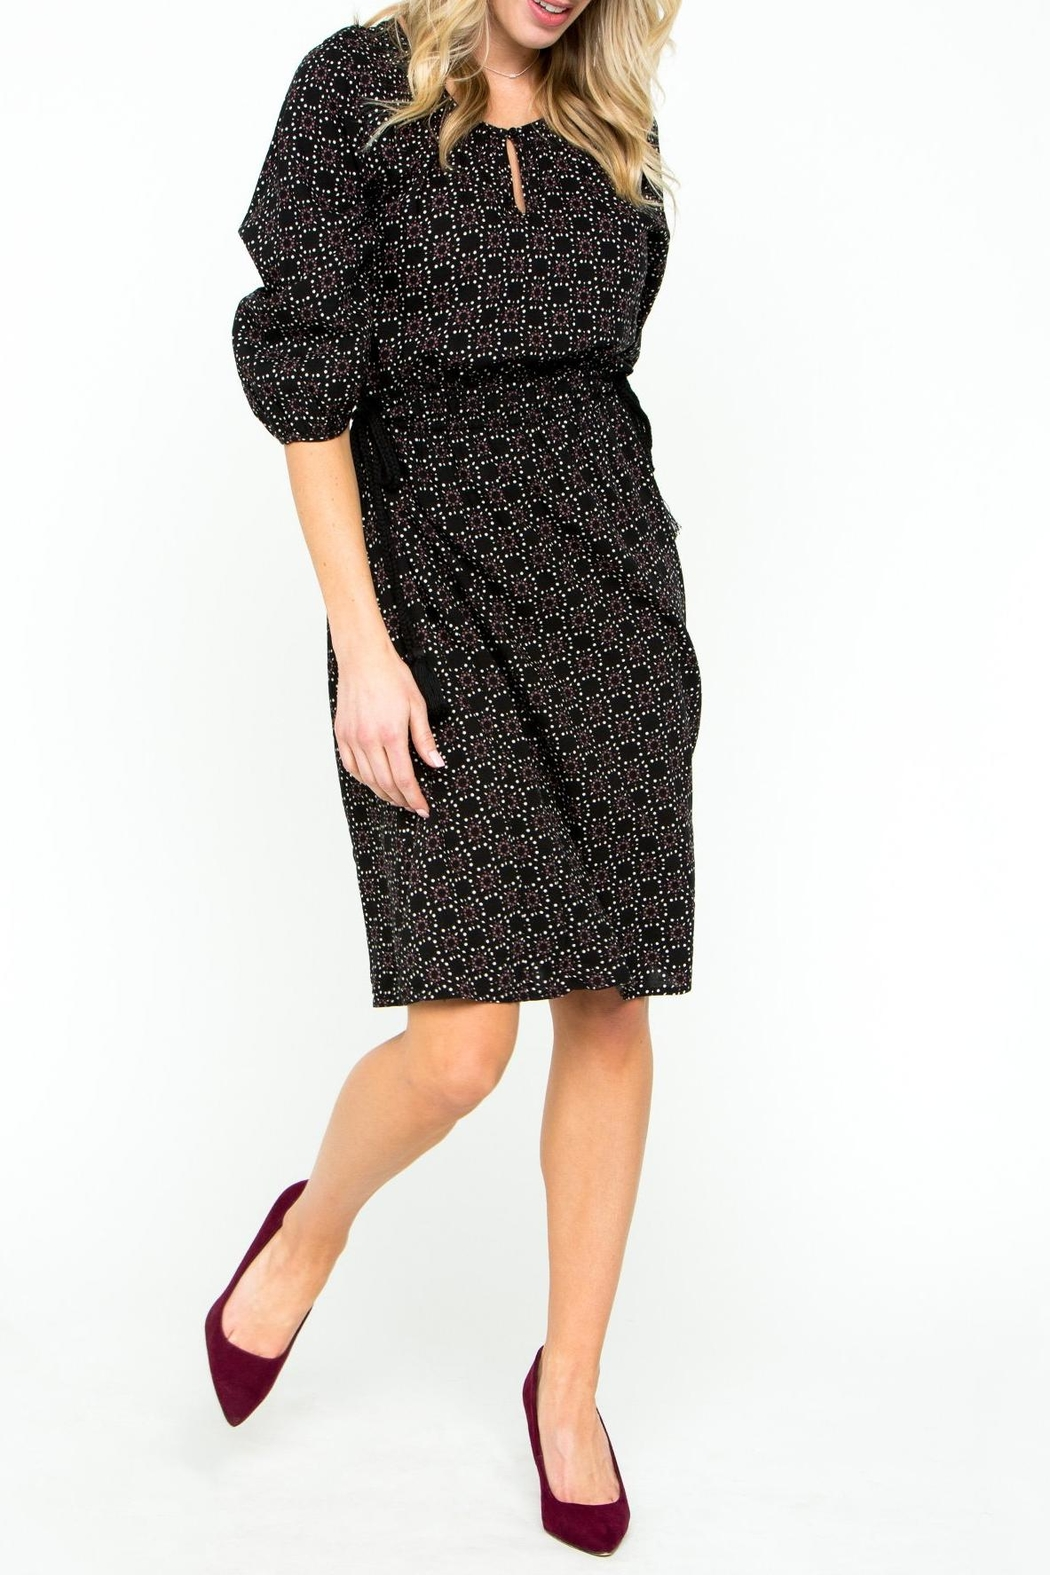 Downeast Basics Holiday Dinner Dress - Main Image